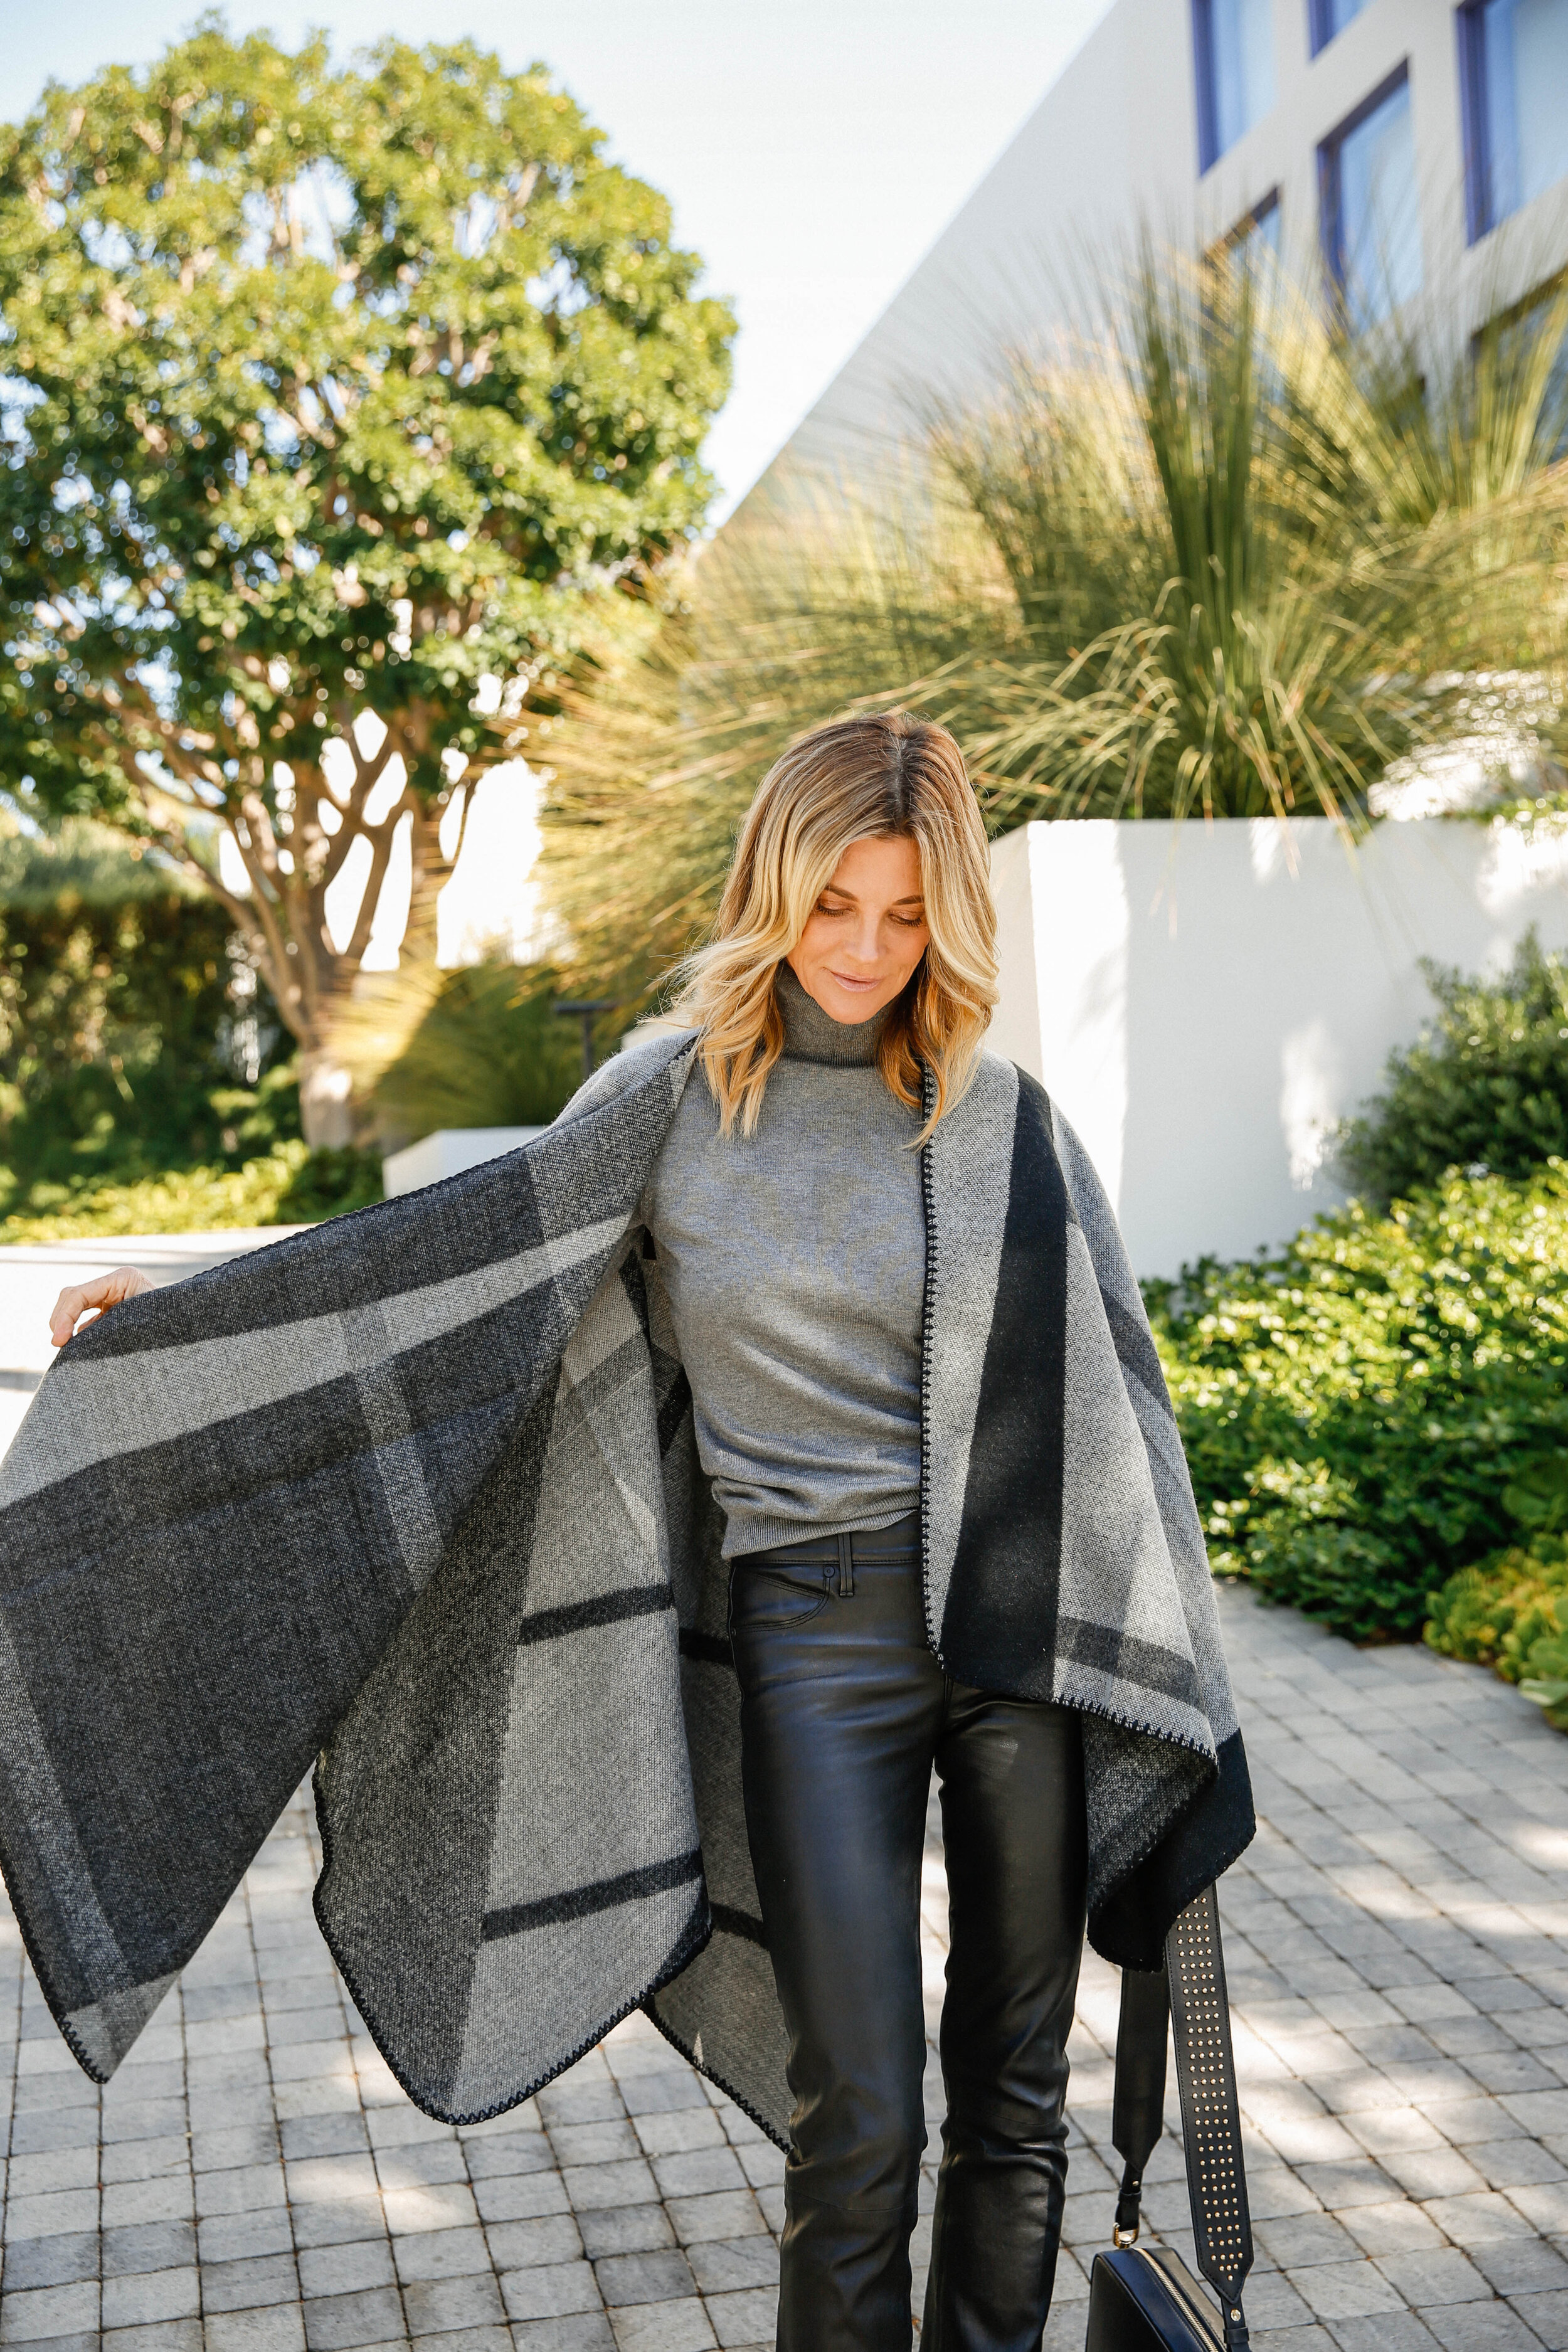 Wrap up in our  Doheny Wrap  for comfort and style.